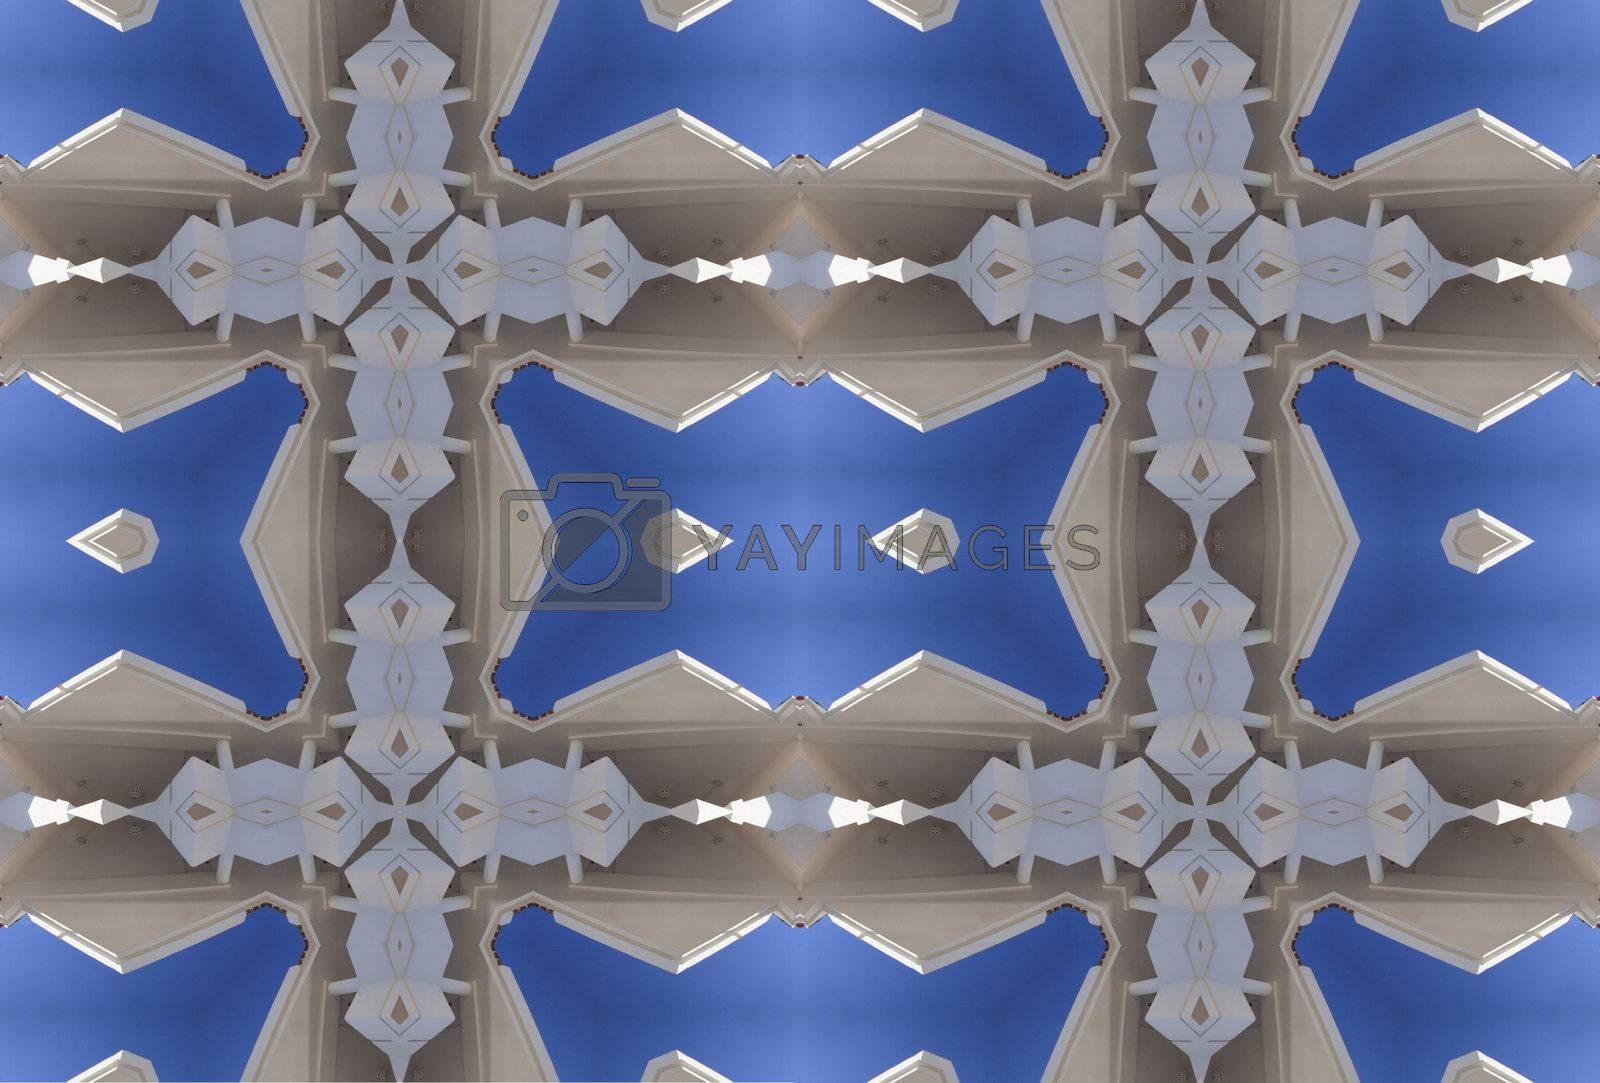 Royalty free image of grid effect abstract design by leafy